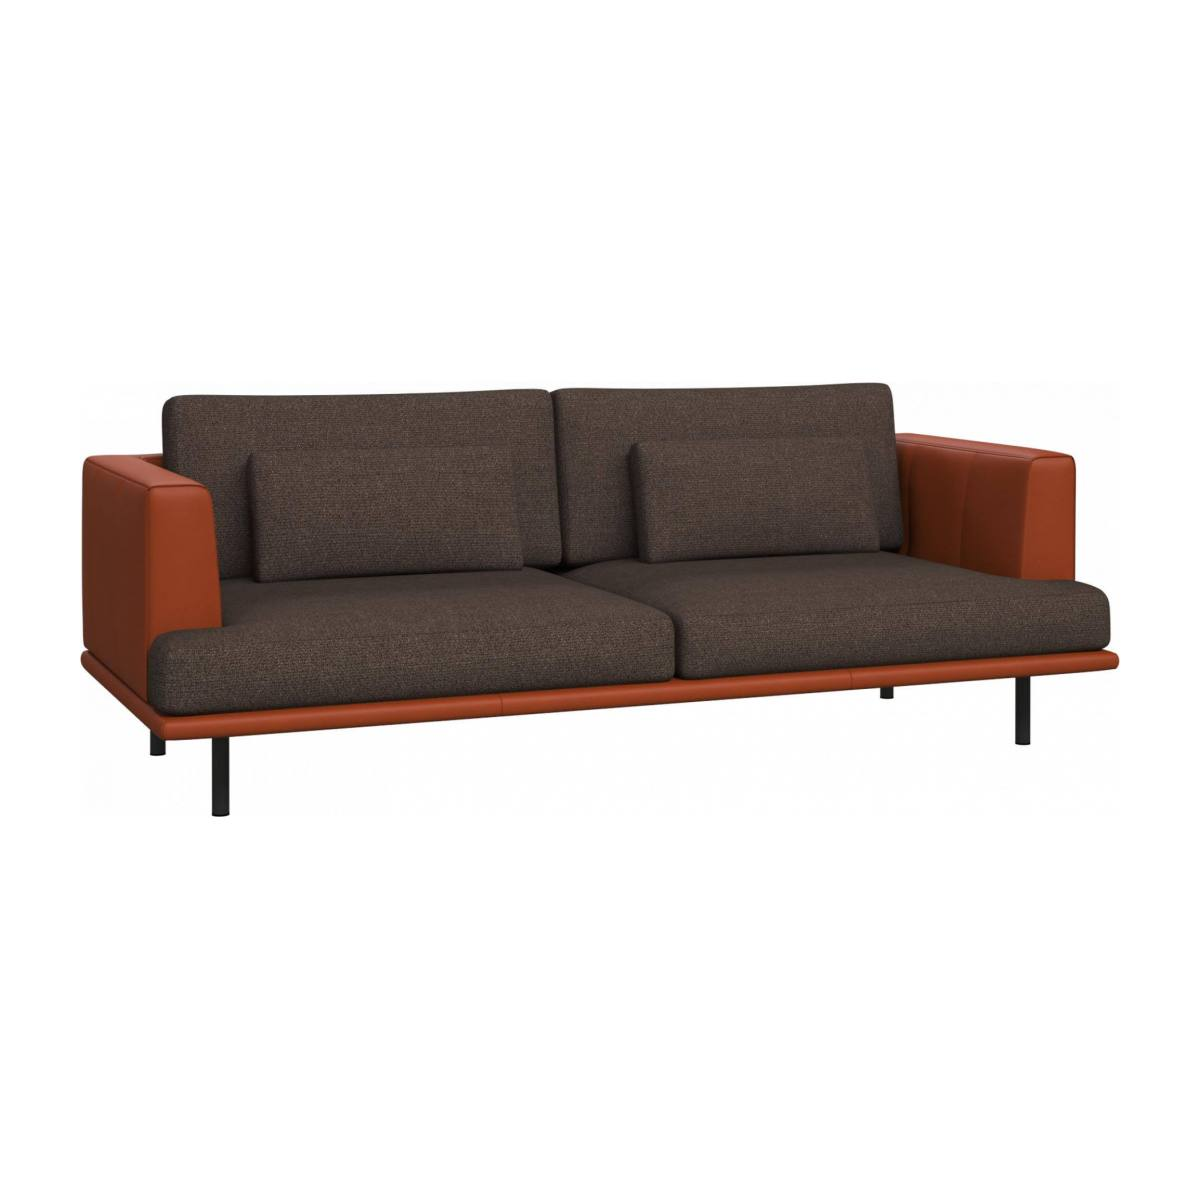 3 seater sofa in Lecce fabric, muscat with base and armrests in brown leather n°3